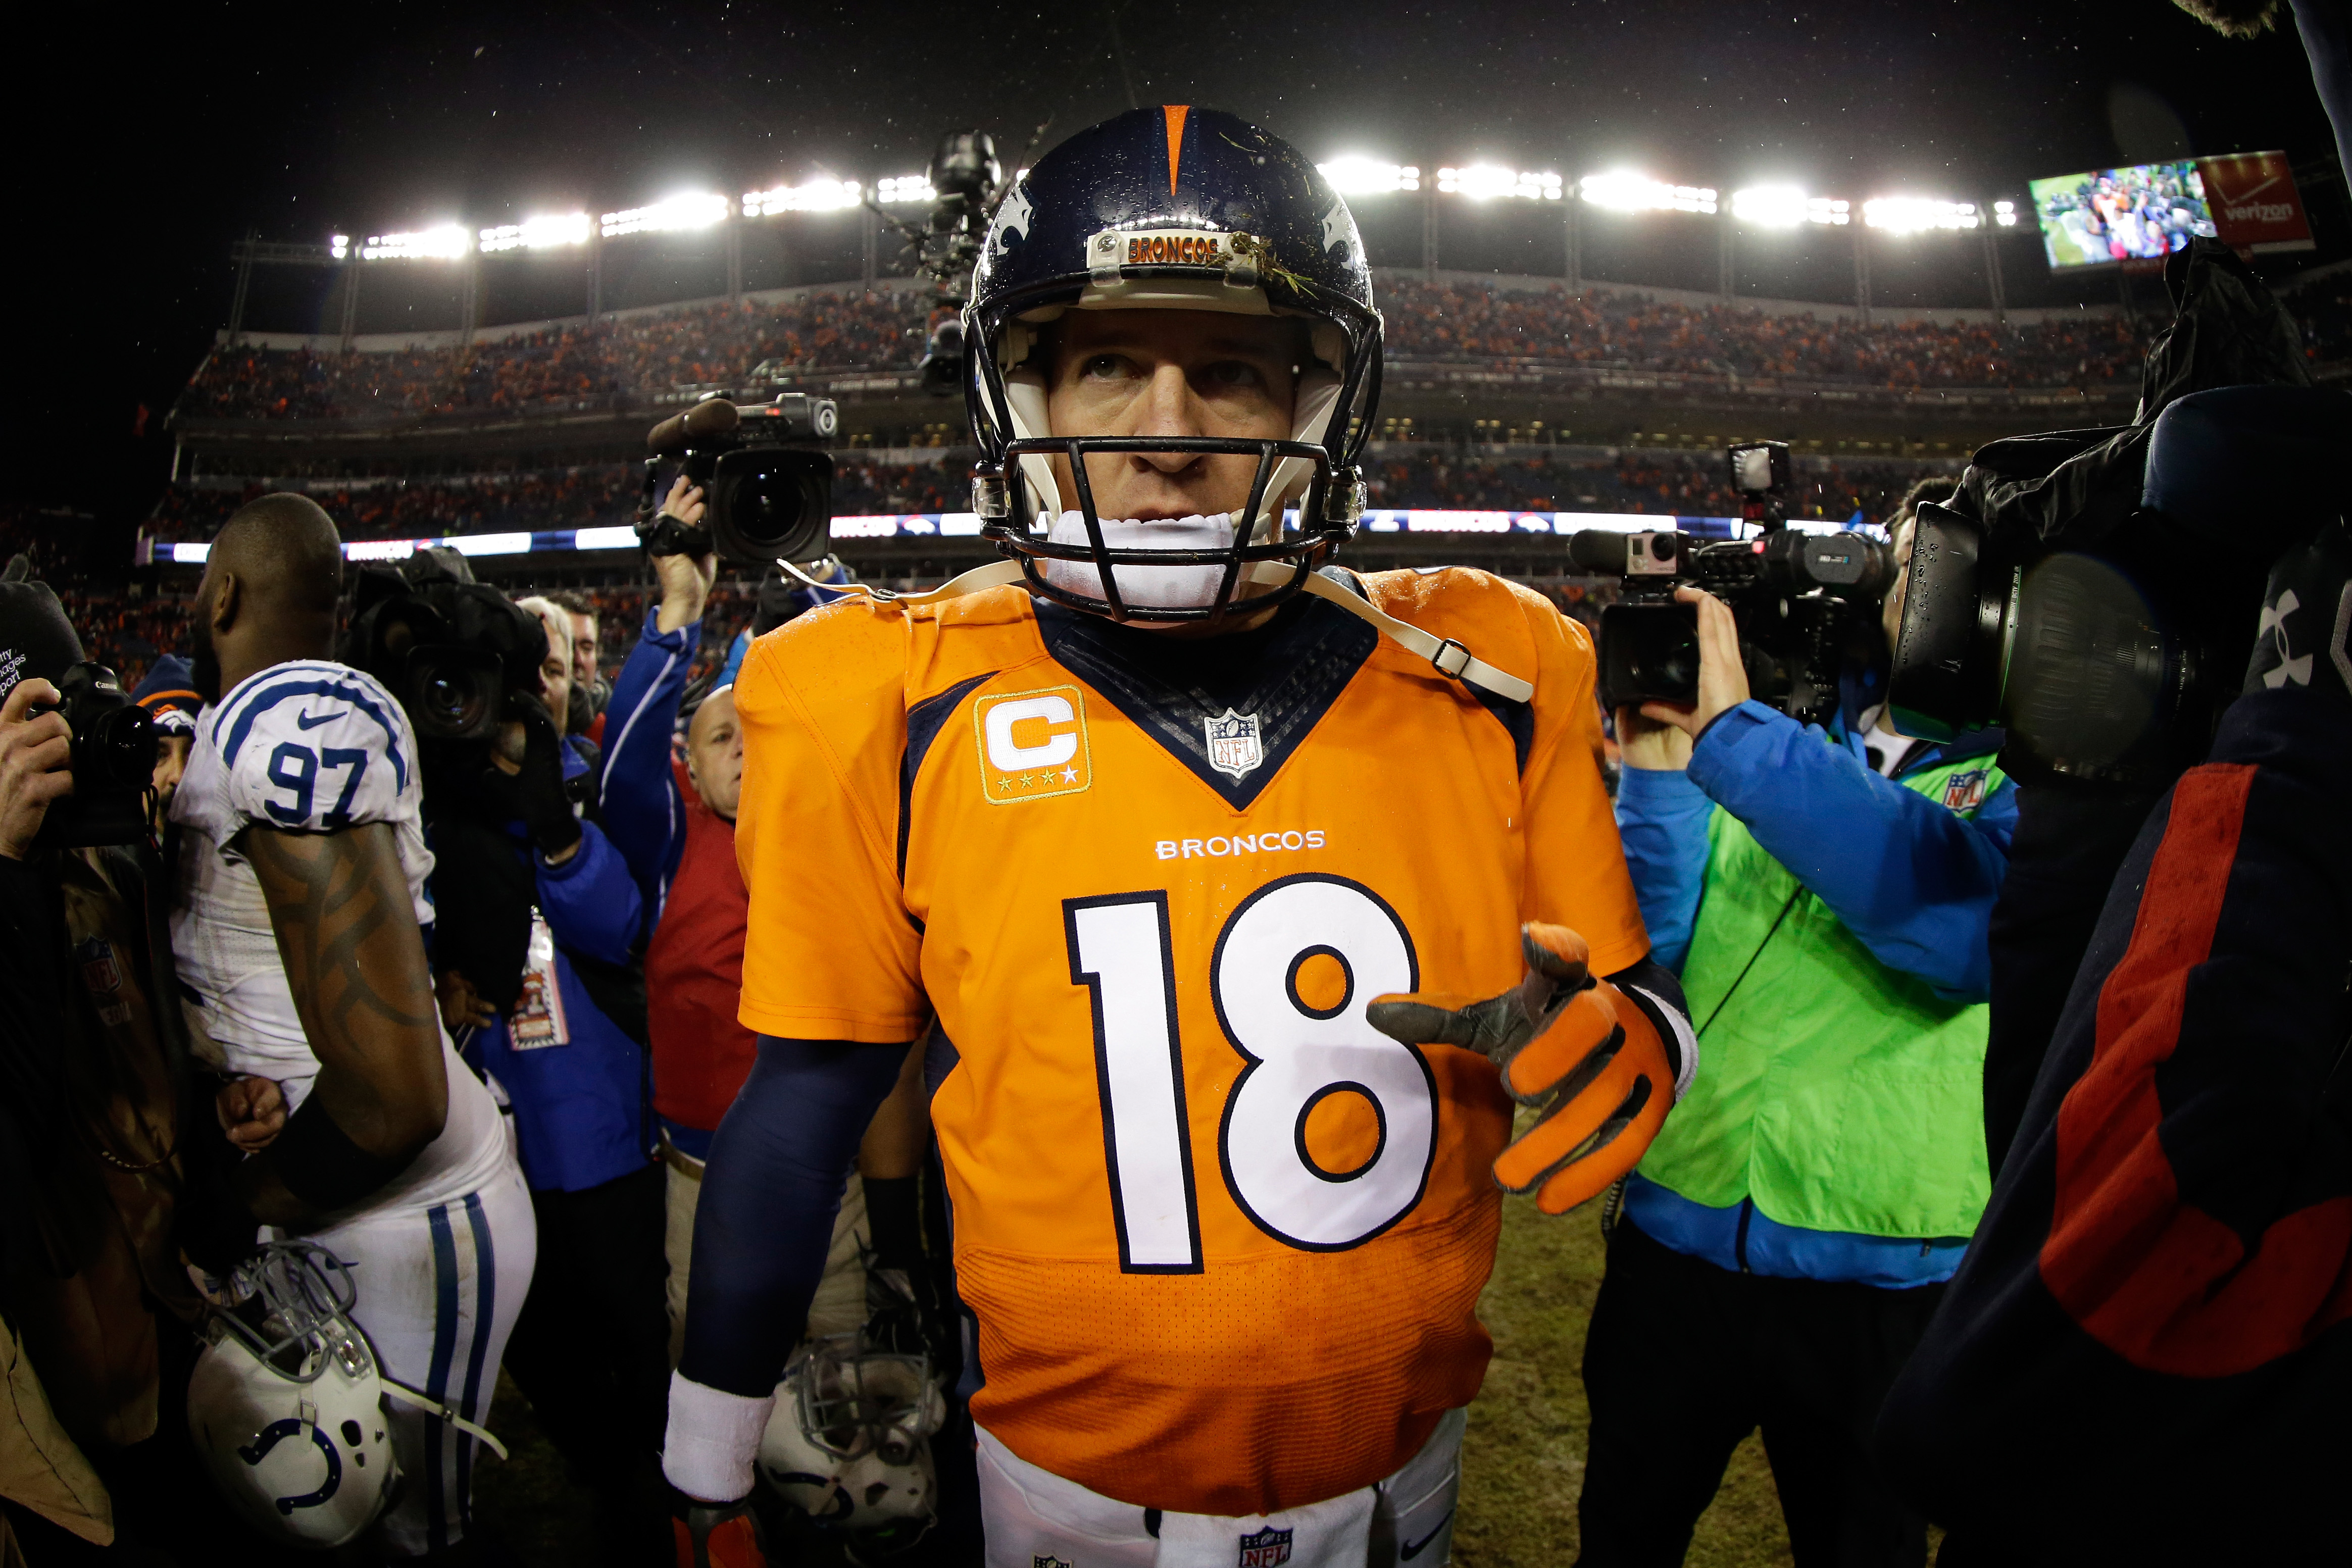 Peyton Manning, Broncos vs. Colts 2015 playoffs, Broncos 2015 win total, NFL prop bets 2015